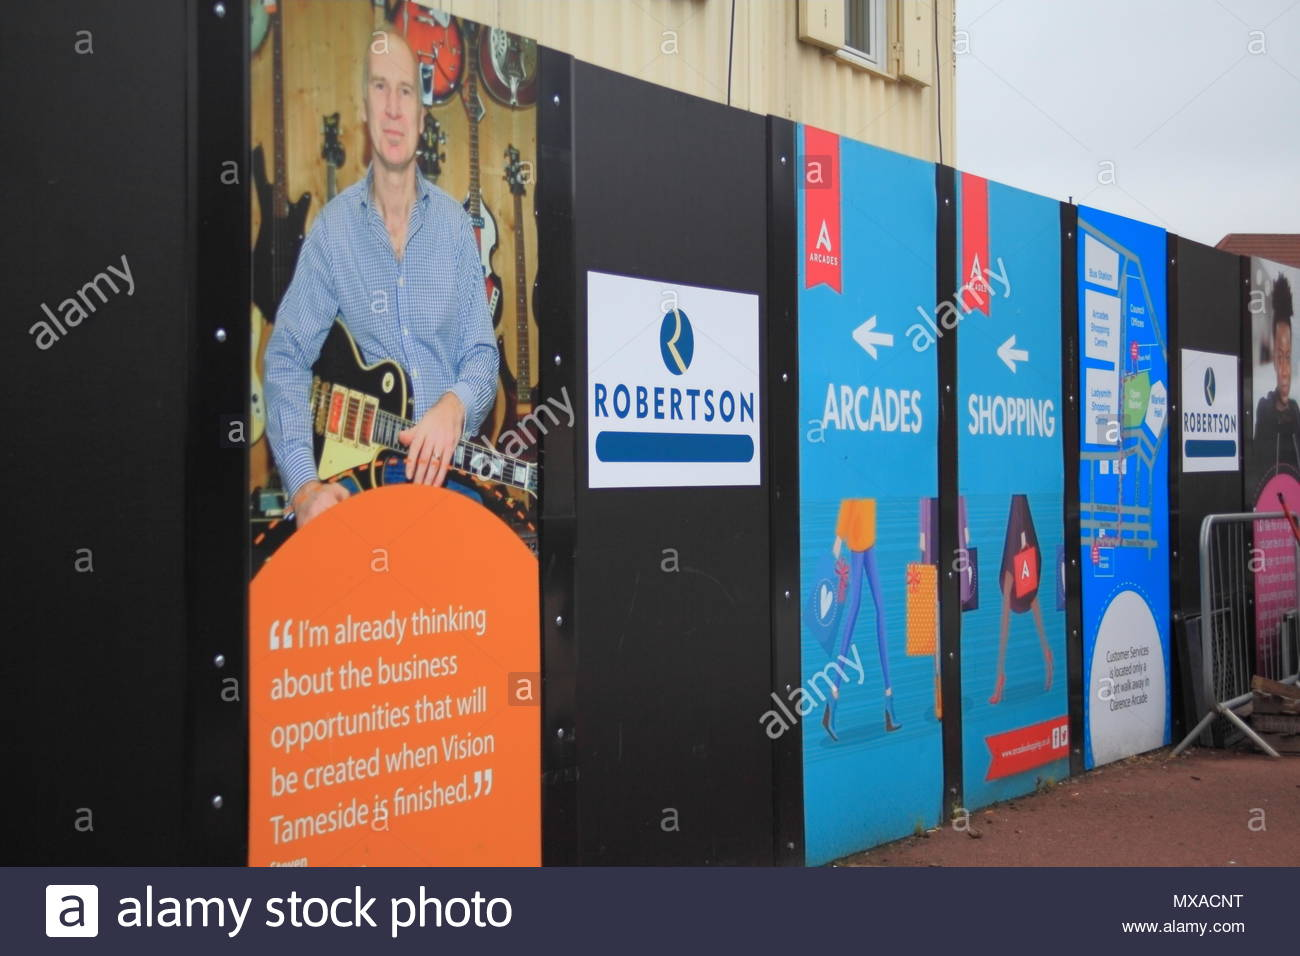 Advertisement Boarding Of Joint Public Service Centre For The Vision Tameside Project At Wellington Street Ashton-Under-Lyne Tameside June 2018 - Stock Image